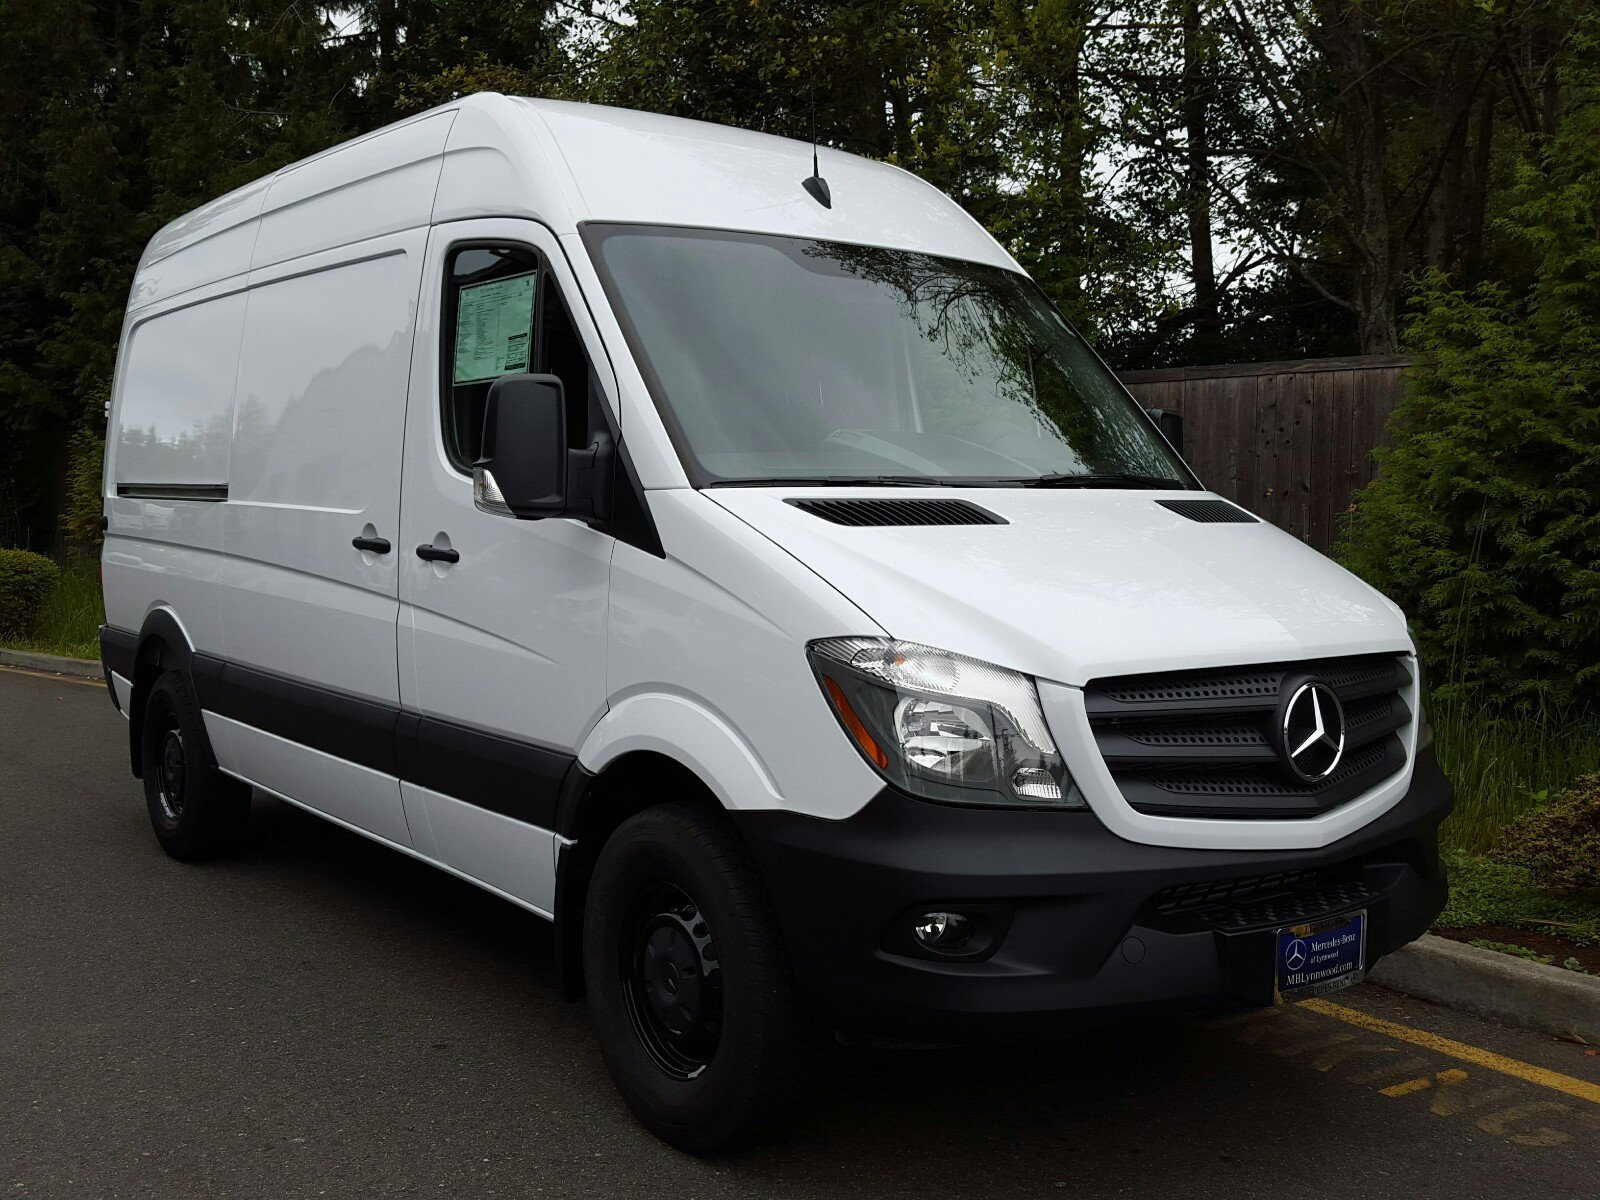 New 2017 mercedes benz sprinter cargo van worker cargo van for 2017 mercedes benz sprinter cargo van